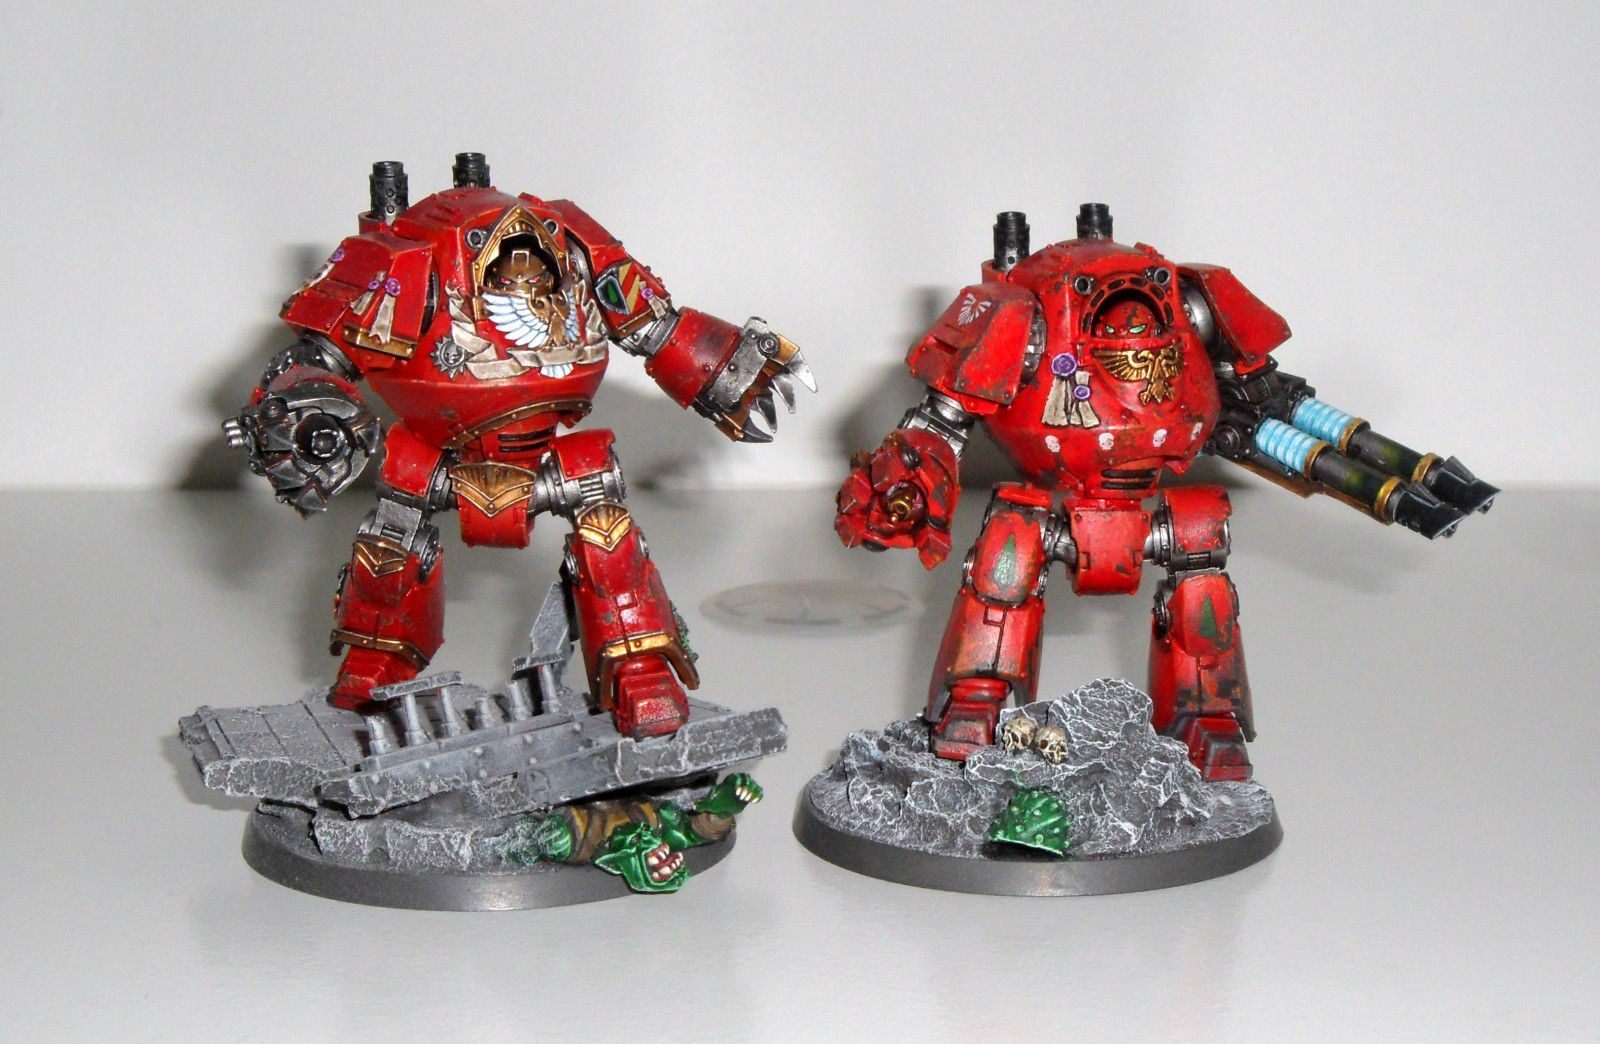 [IX] Par le sang de Sanguinius. Armée Blood Angels 30K. SAM_3127